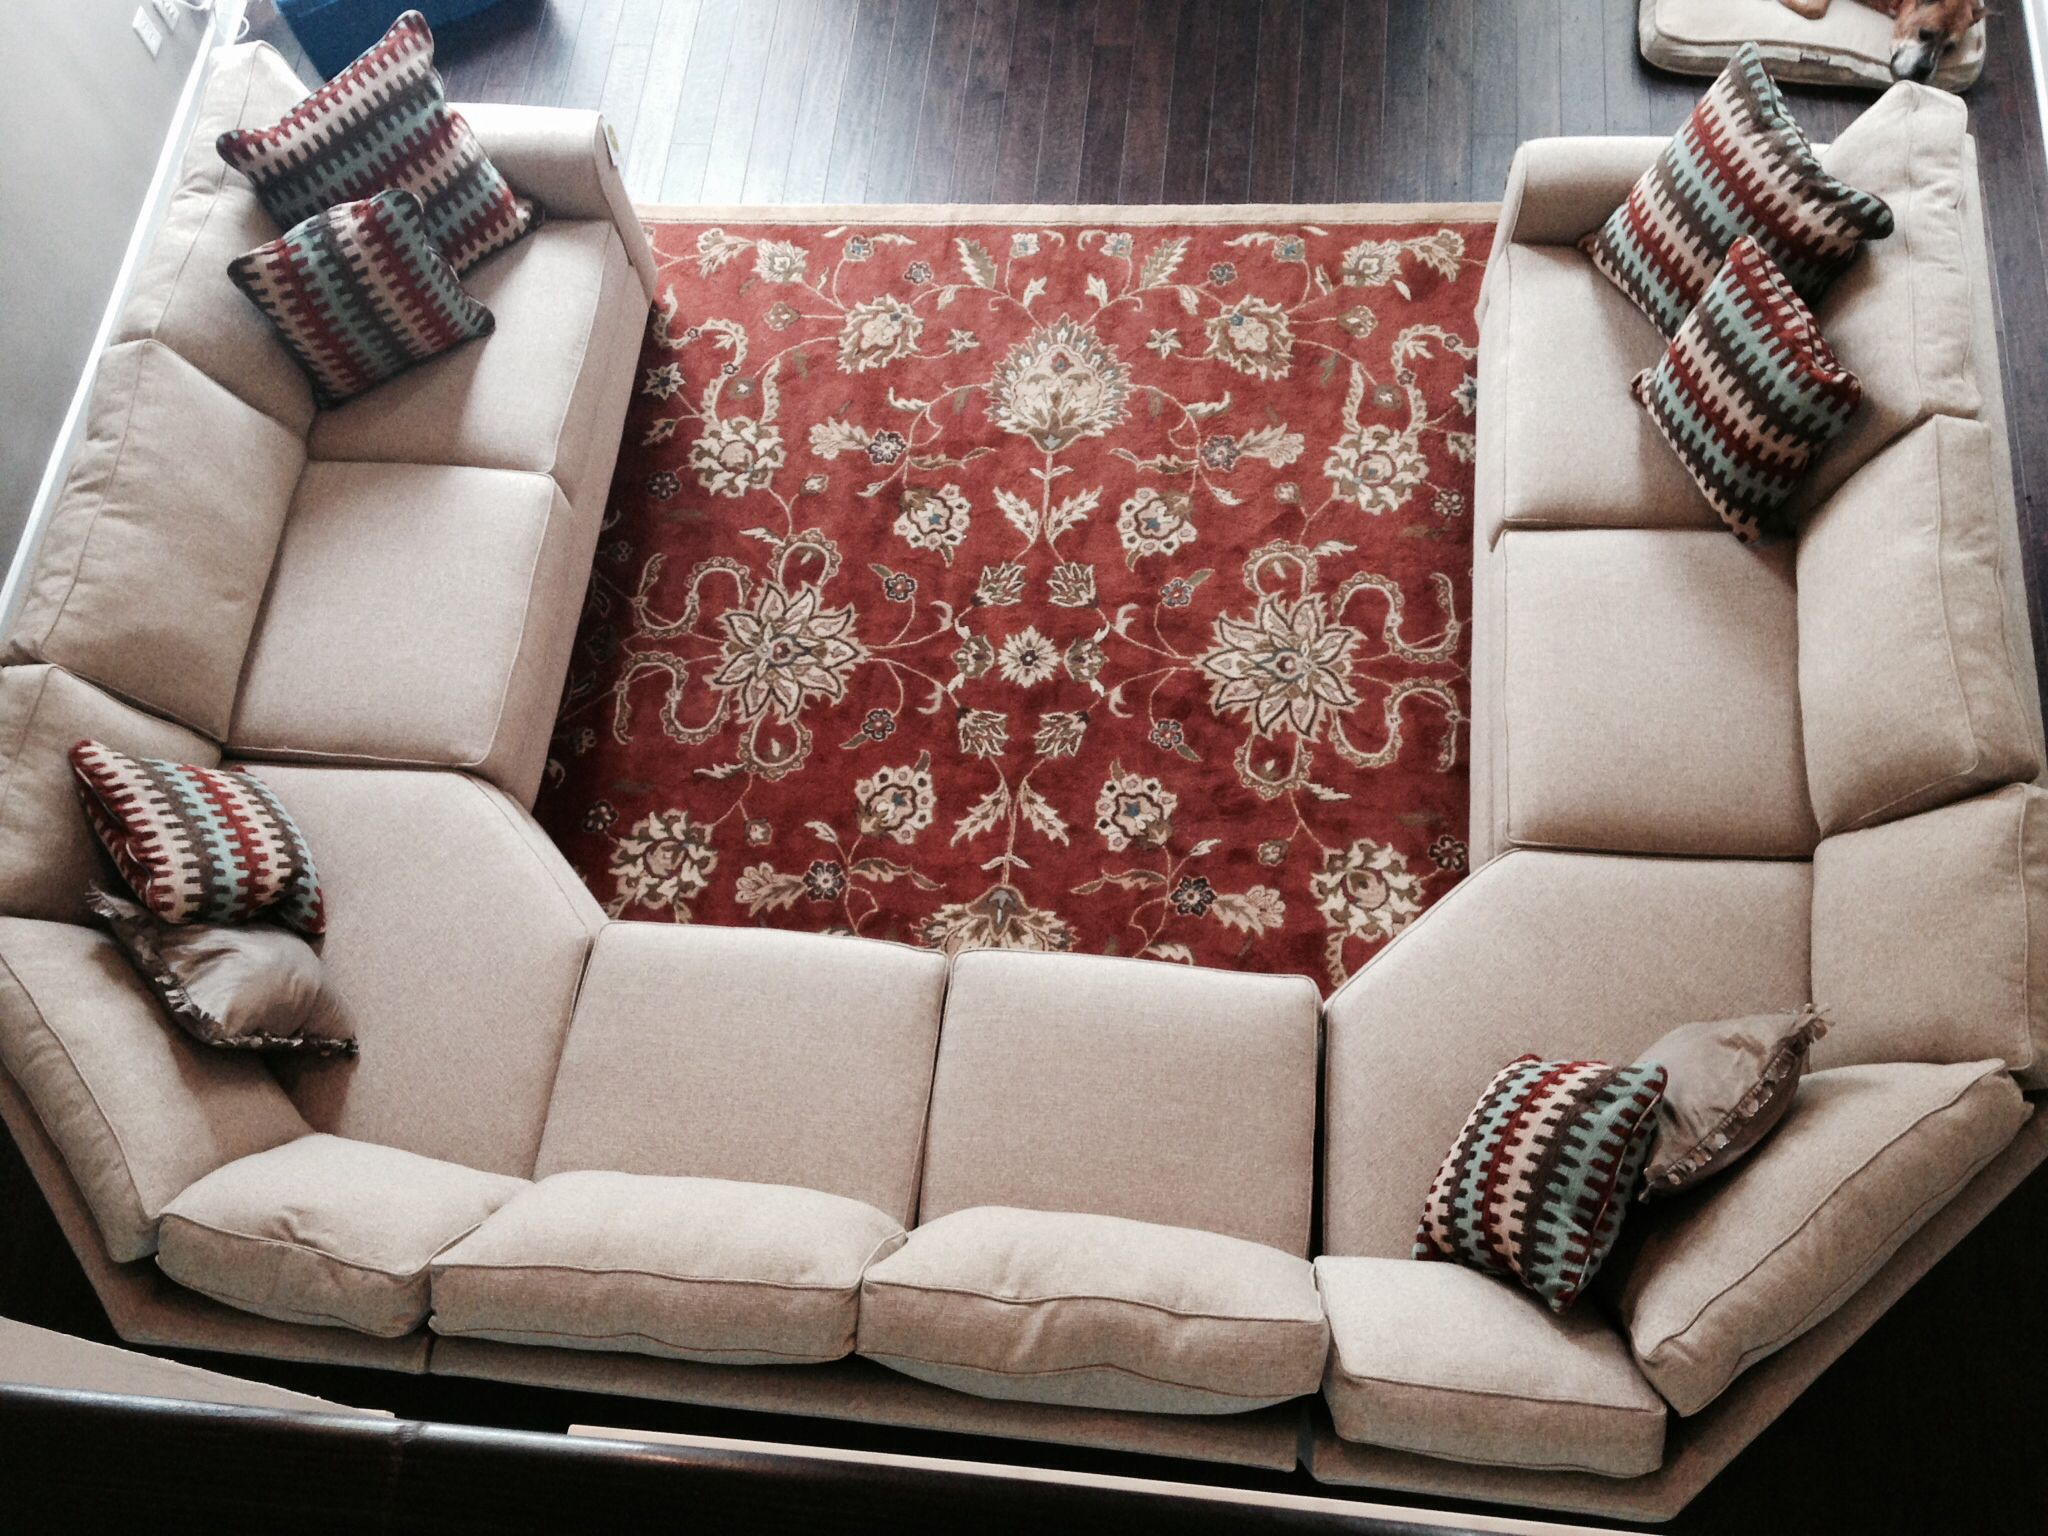 e saving sectional sofas olive green sofa throws our new inspired by the crate and barrel u shaped